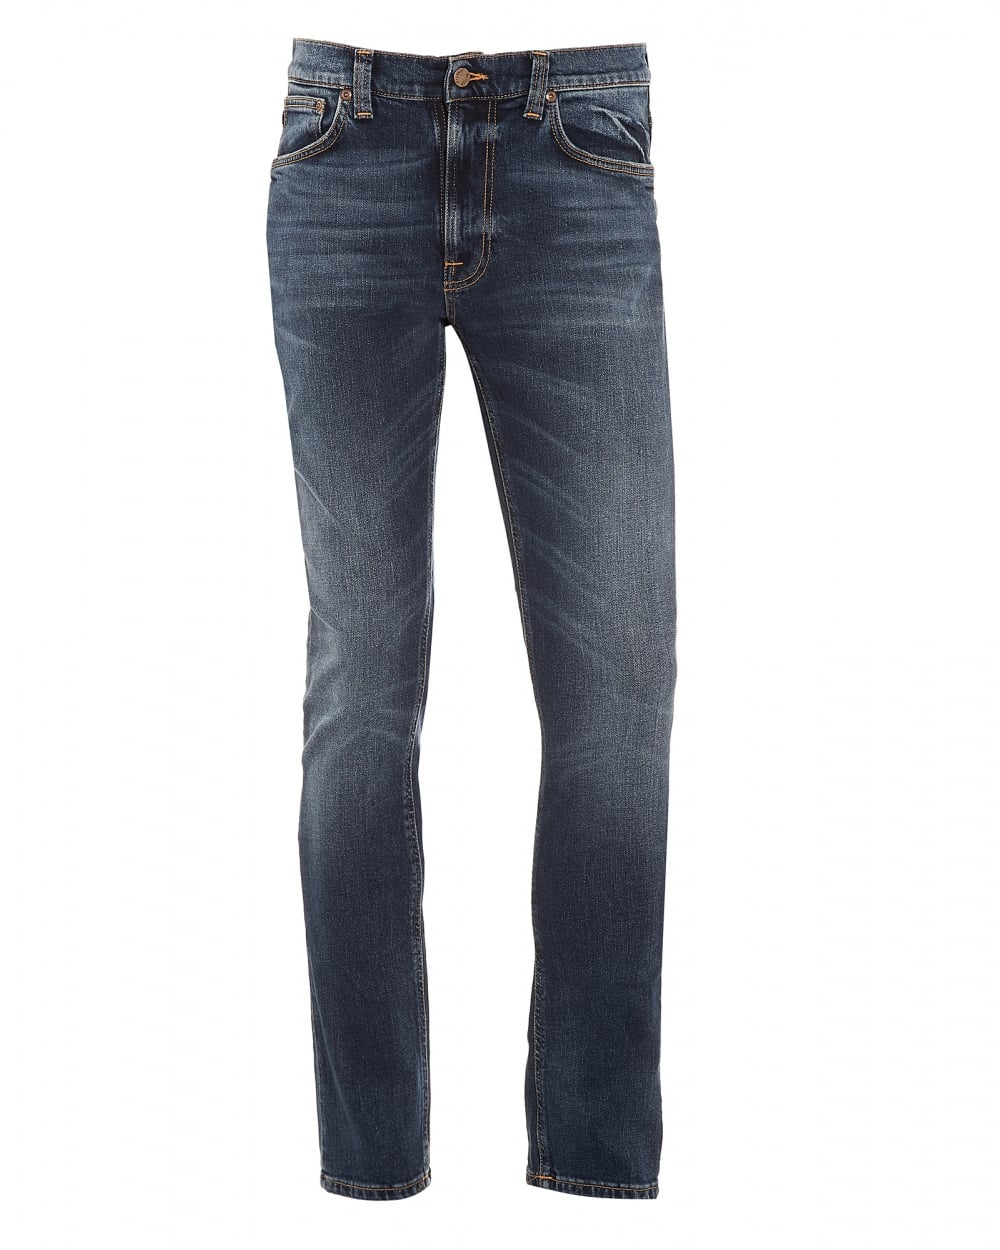 Find indigo dark denim skinny jeans at ShopStyle. Shop the latest collection of indigo dark denim skinny jeans from the most popular stores - all in.